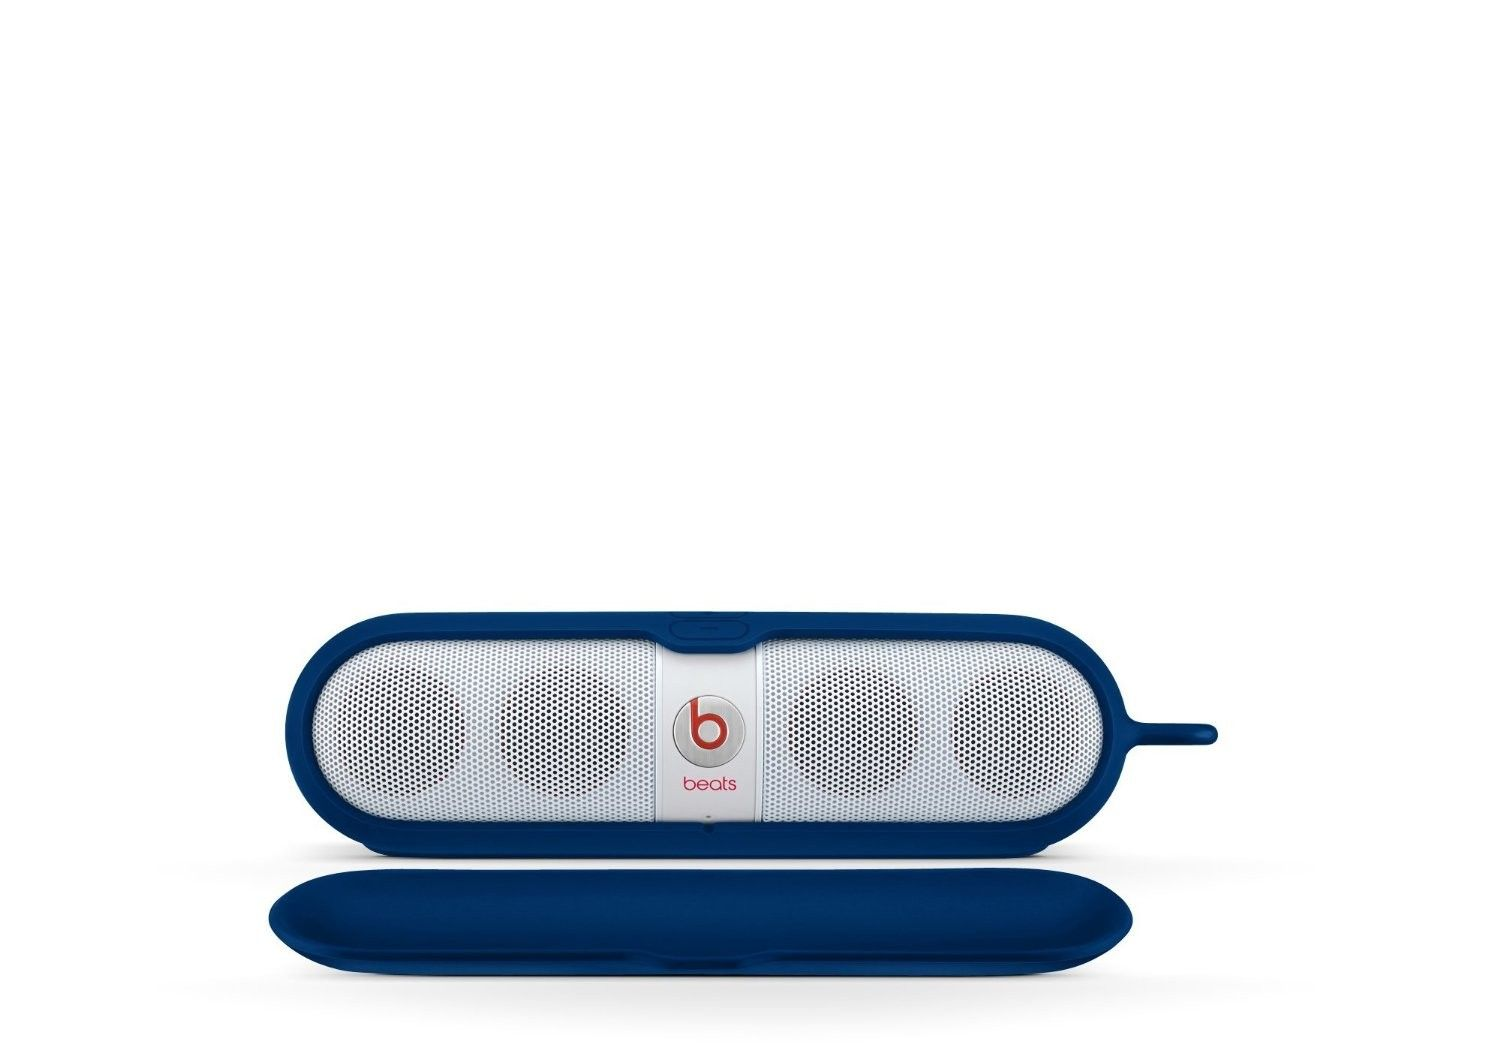 Check out our New Product  Beats Pill Sleeve - Blue Speakers The Beats Pill Sleeve provides a durable layer of protection to keep your Beats Pill safe when its on the go,while still keeping its compact and sleek design.  Rs.2,625